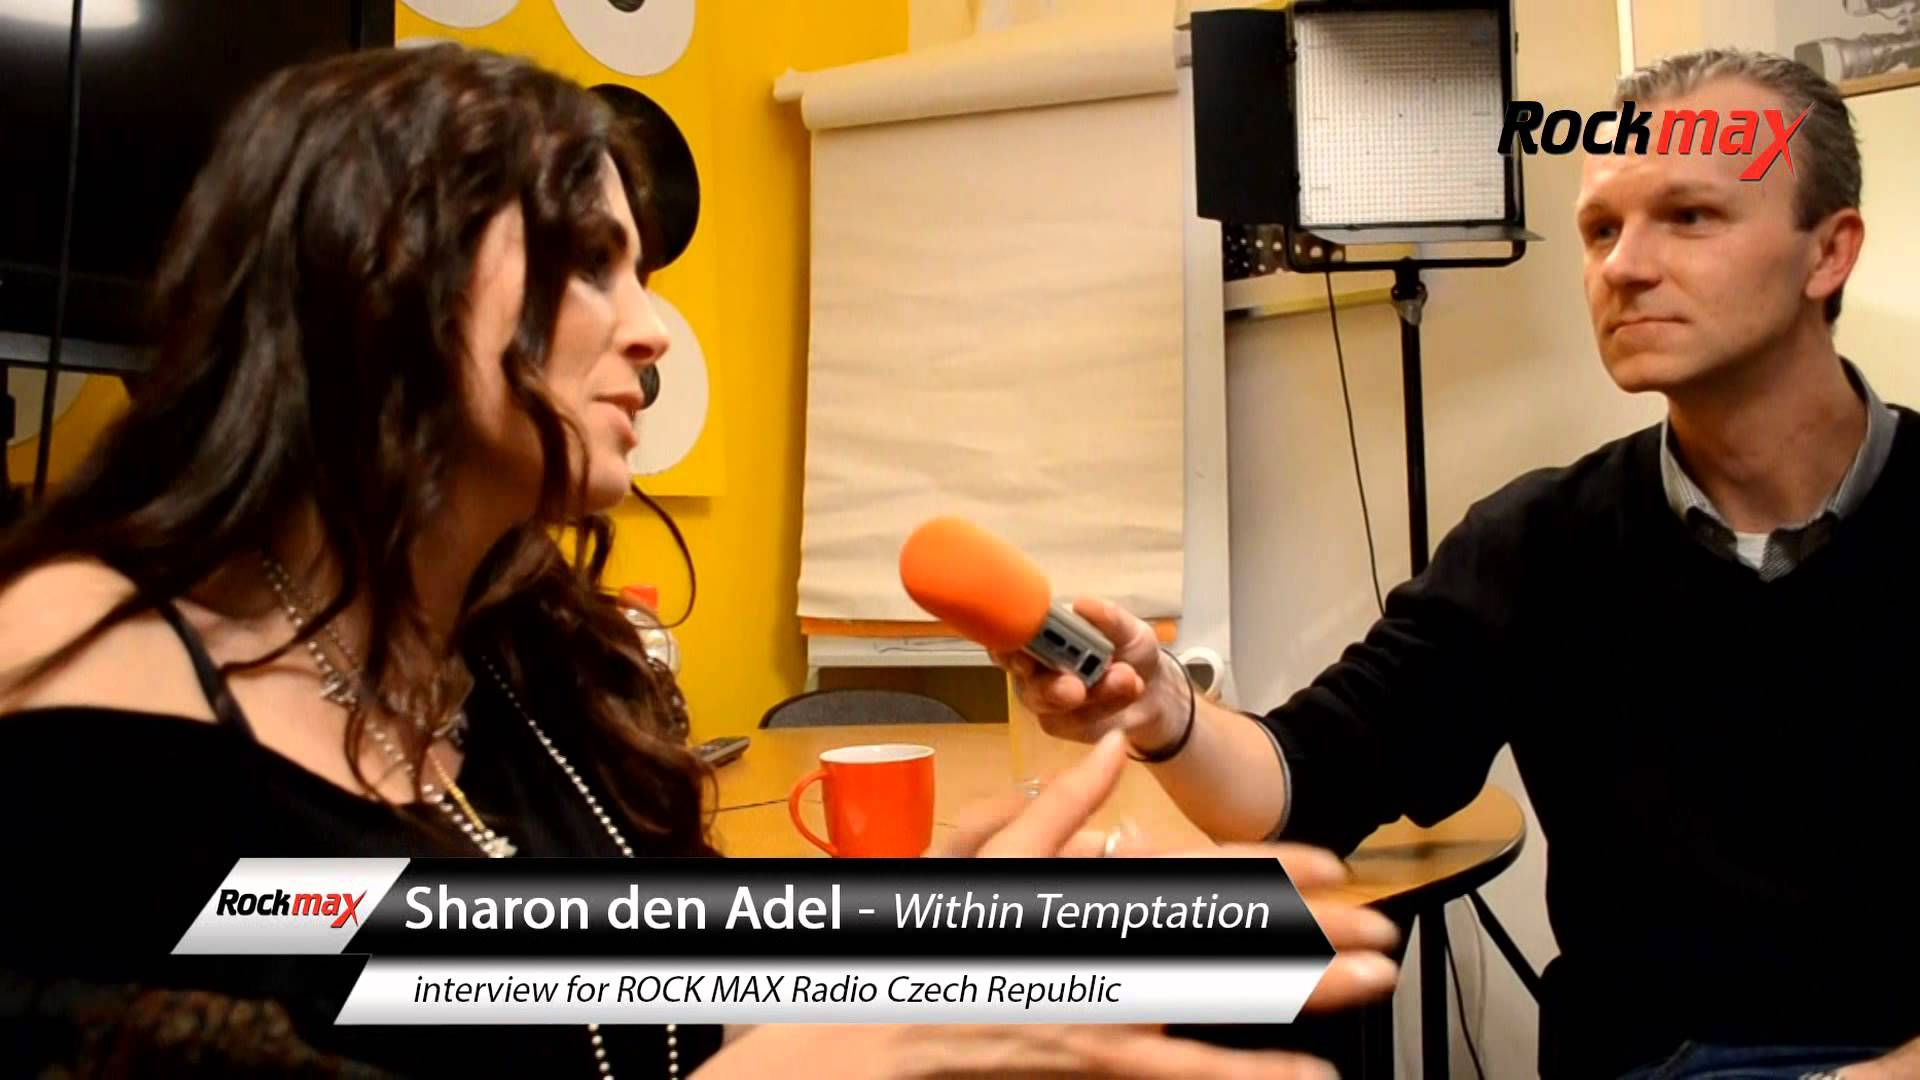 Within Temptation - Sharon den Adel Interview 2014